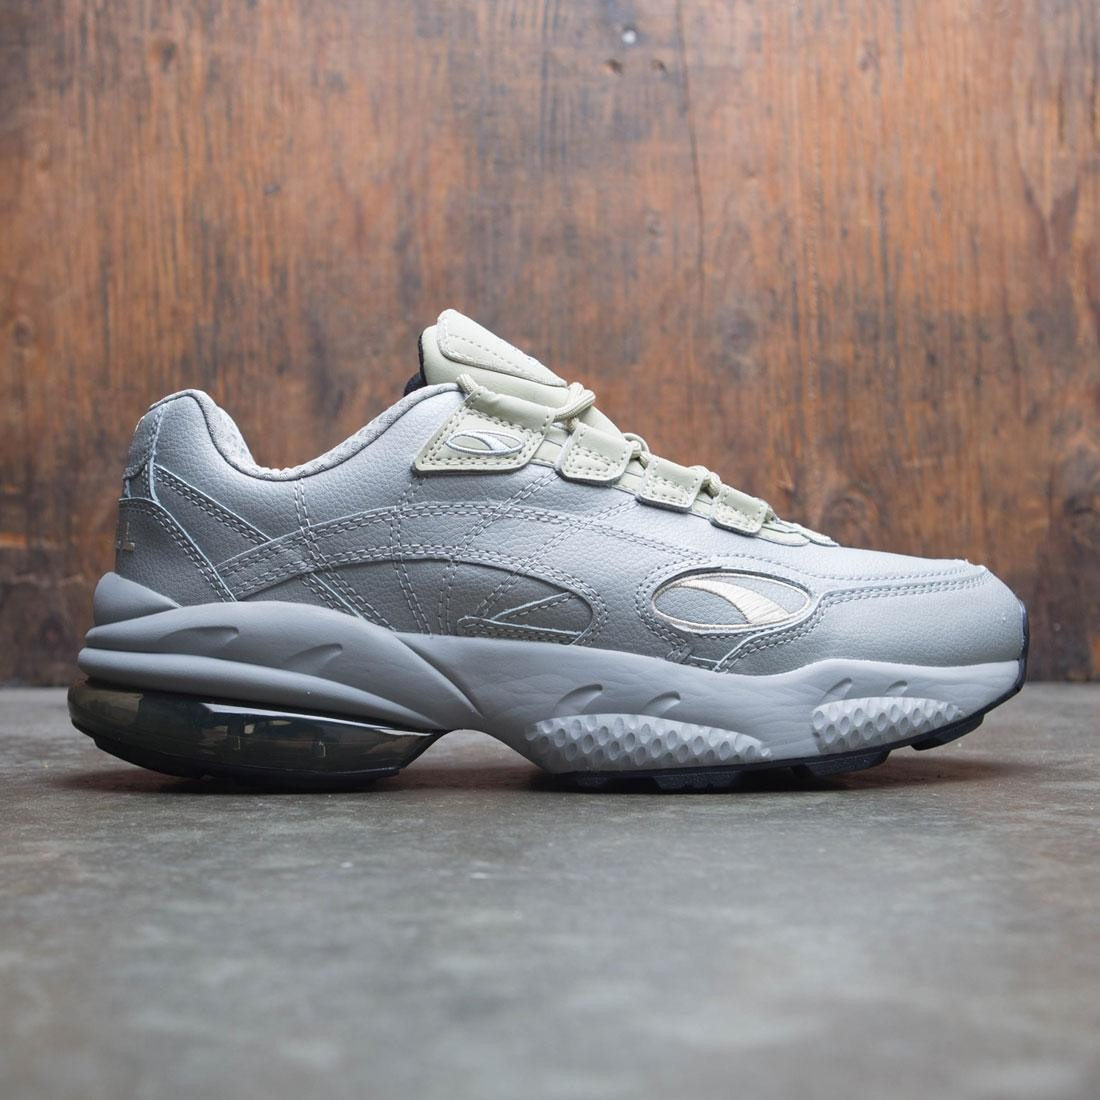 Puma Cell Venom Front Dupla Mens Gray Leather Low Top Sneakers Shoes